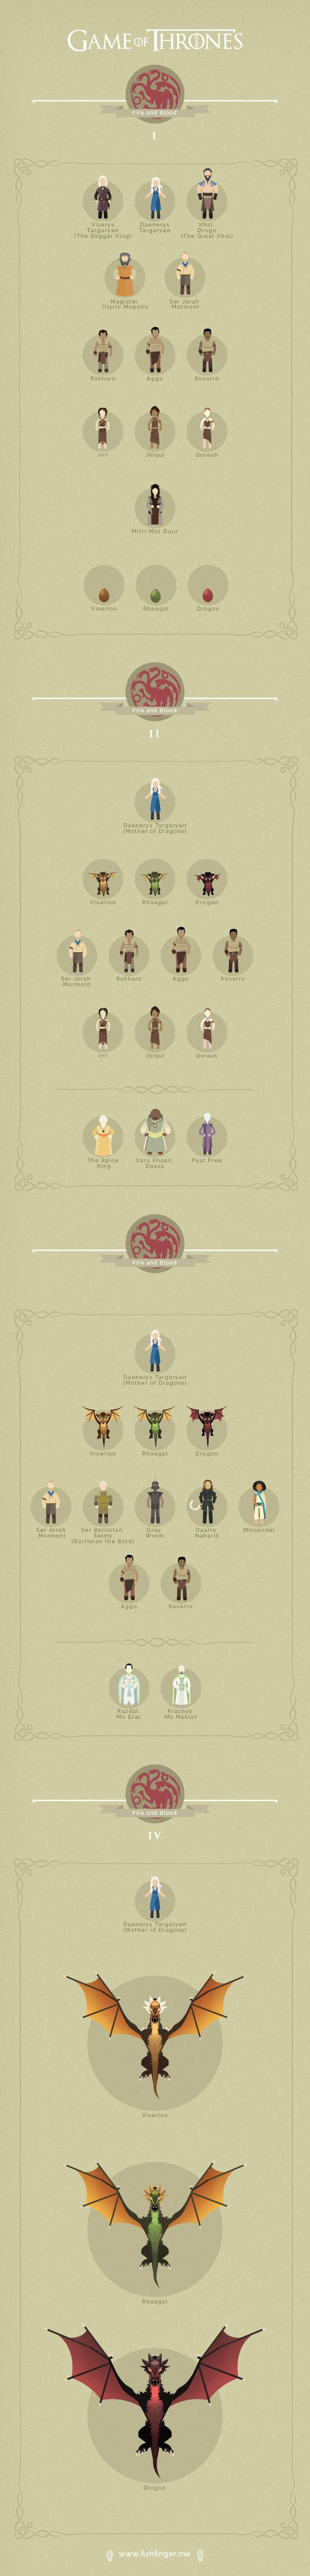 Game of Thrones Infographic - Graphicblog. Aaahhhh SPOILER